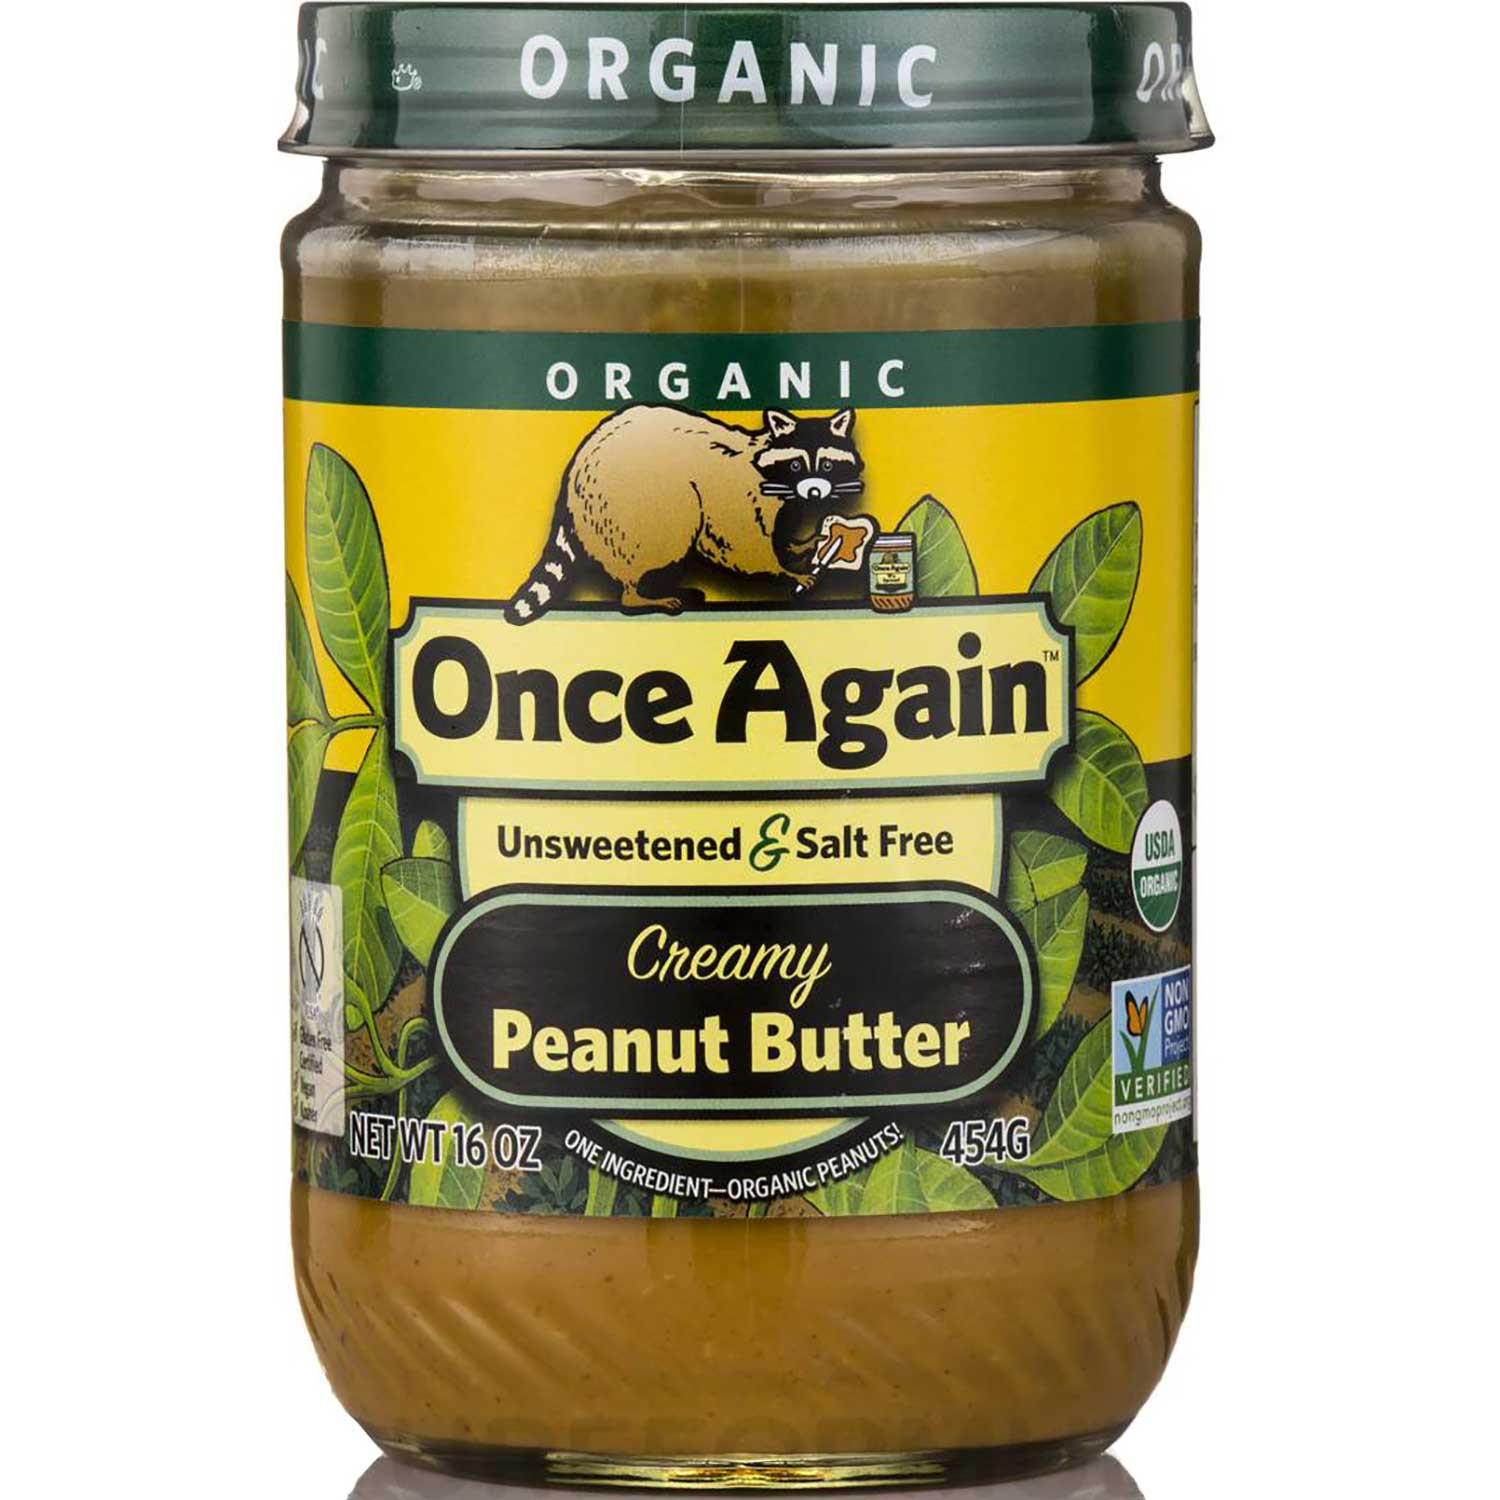 Once Again Nut Butter Organic Peanut Butter - Creamy Unsweetened & Salt Free, 454 g